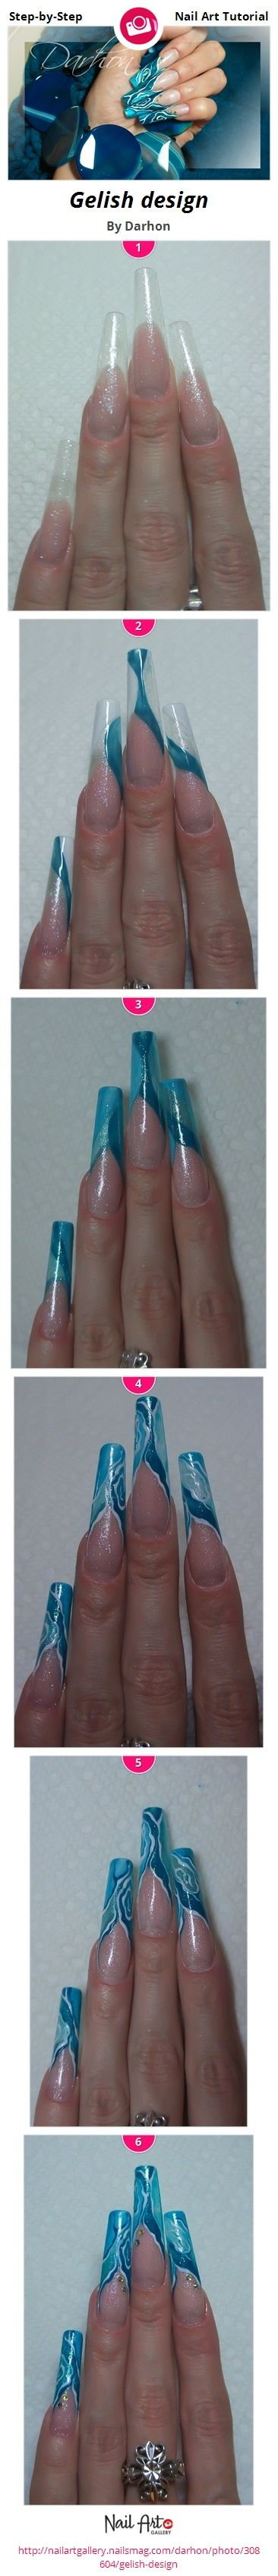 106 best Step by Steps images on Pinterest | Nail scissors ...